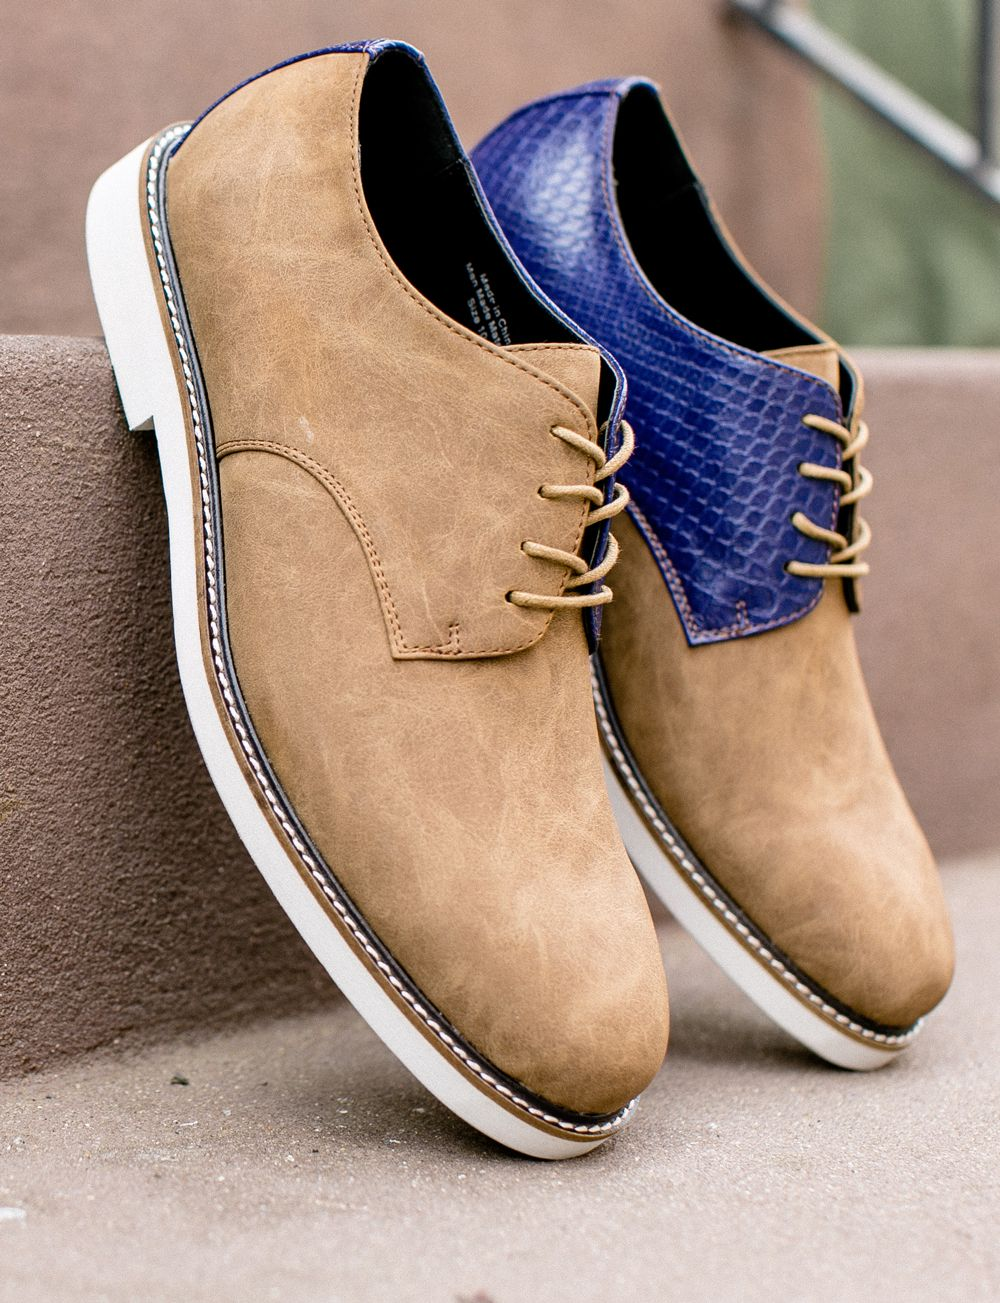 Dress Shoes Are Now $50 | Dress shoes